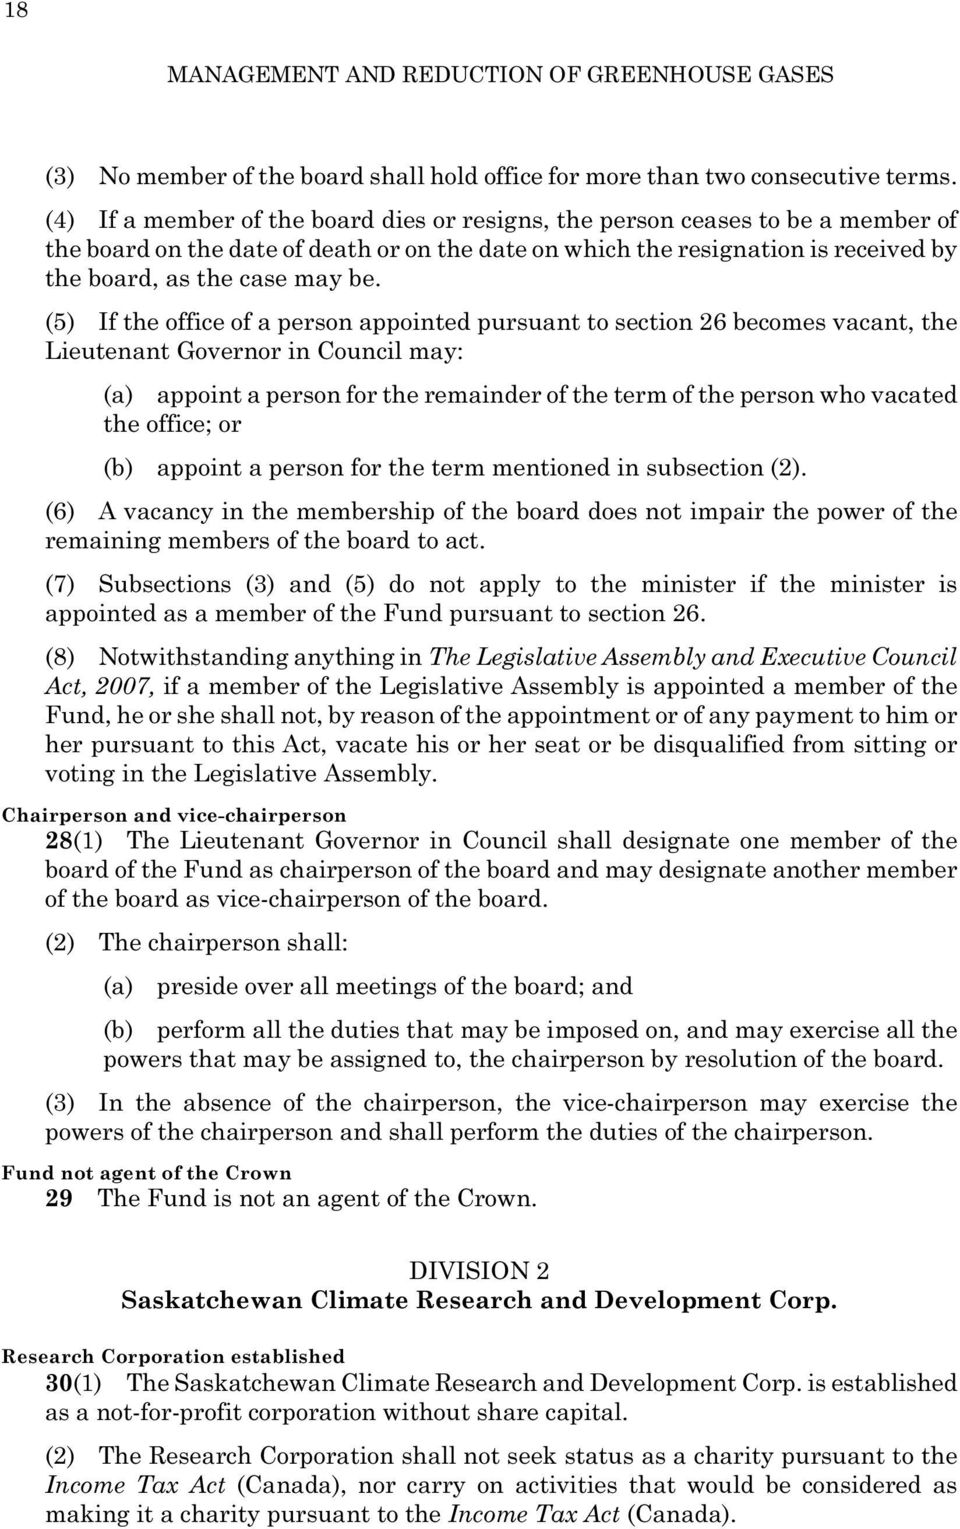 (5) If the office of a person appointed pursuant to section 26 becomes vacant, the Lieutenant Governor in Council may: (a) appoint a person for the remainder of the term of the person who vacated the